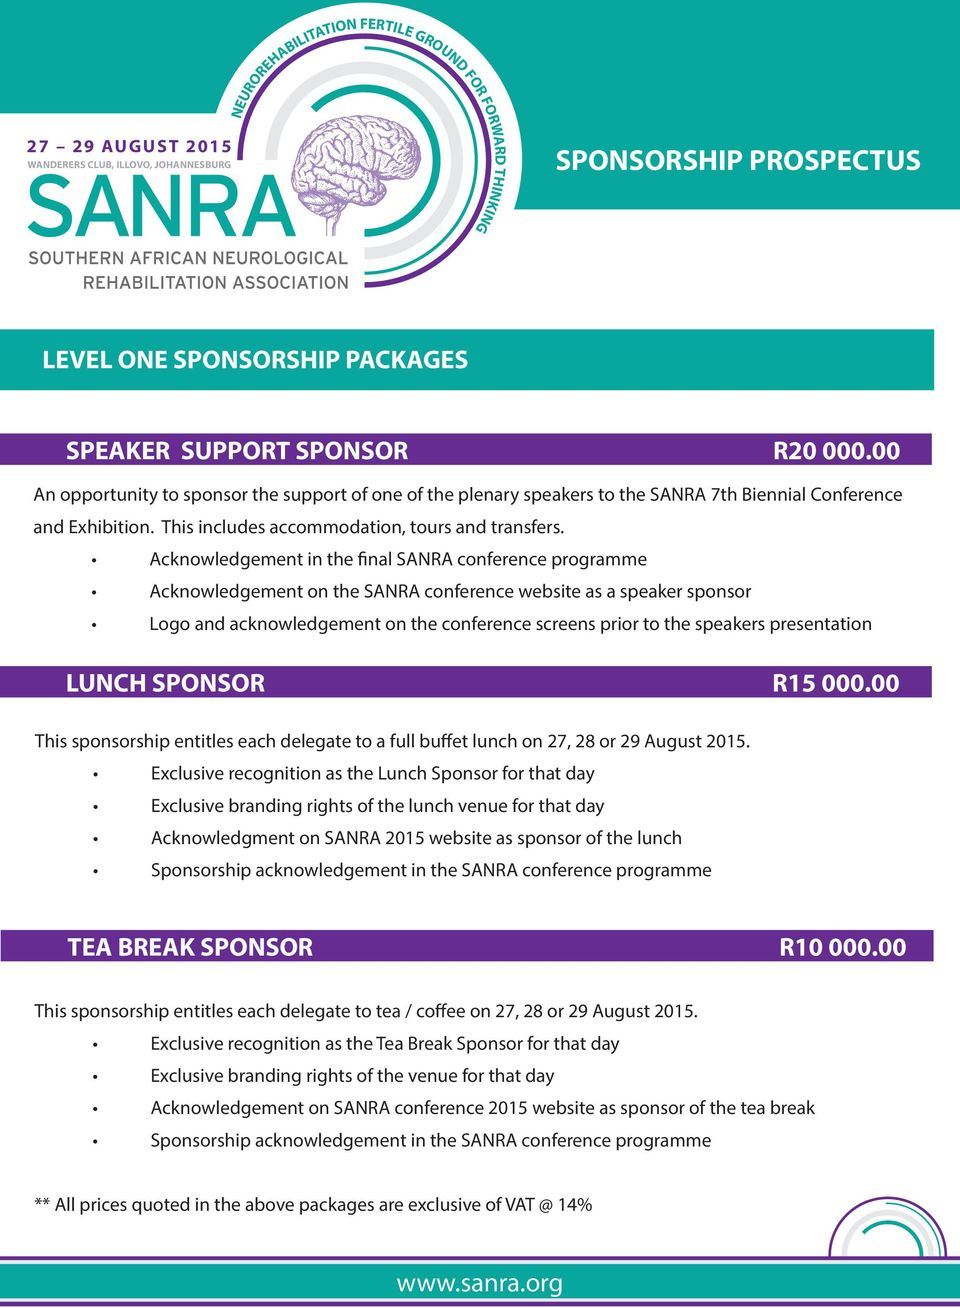 Acknowledgement in the final SANRA conference programme Acknowledgement on the SANRA conference website as a speaker sponsor Logo and acknowledgement on the conference screens prior to the speakers